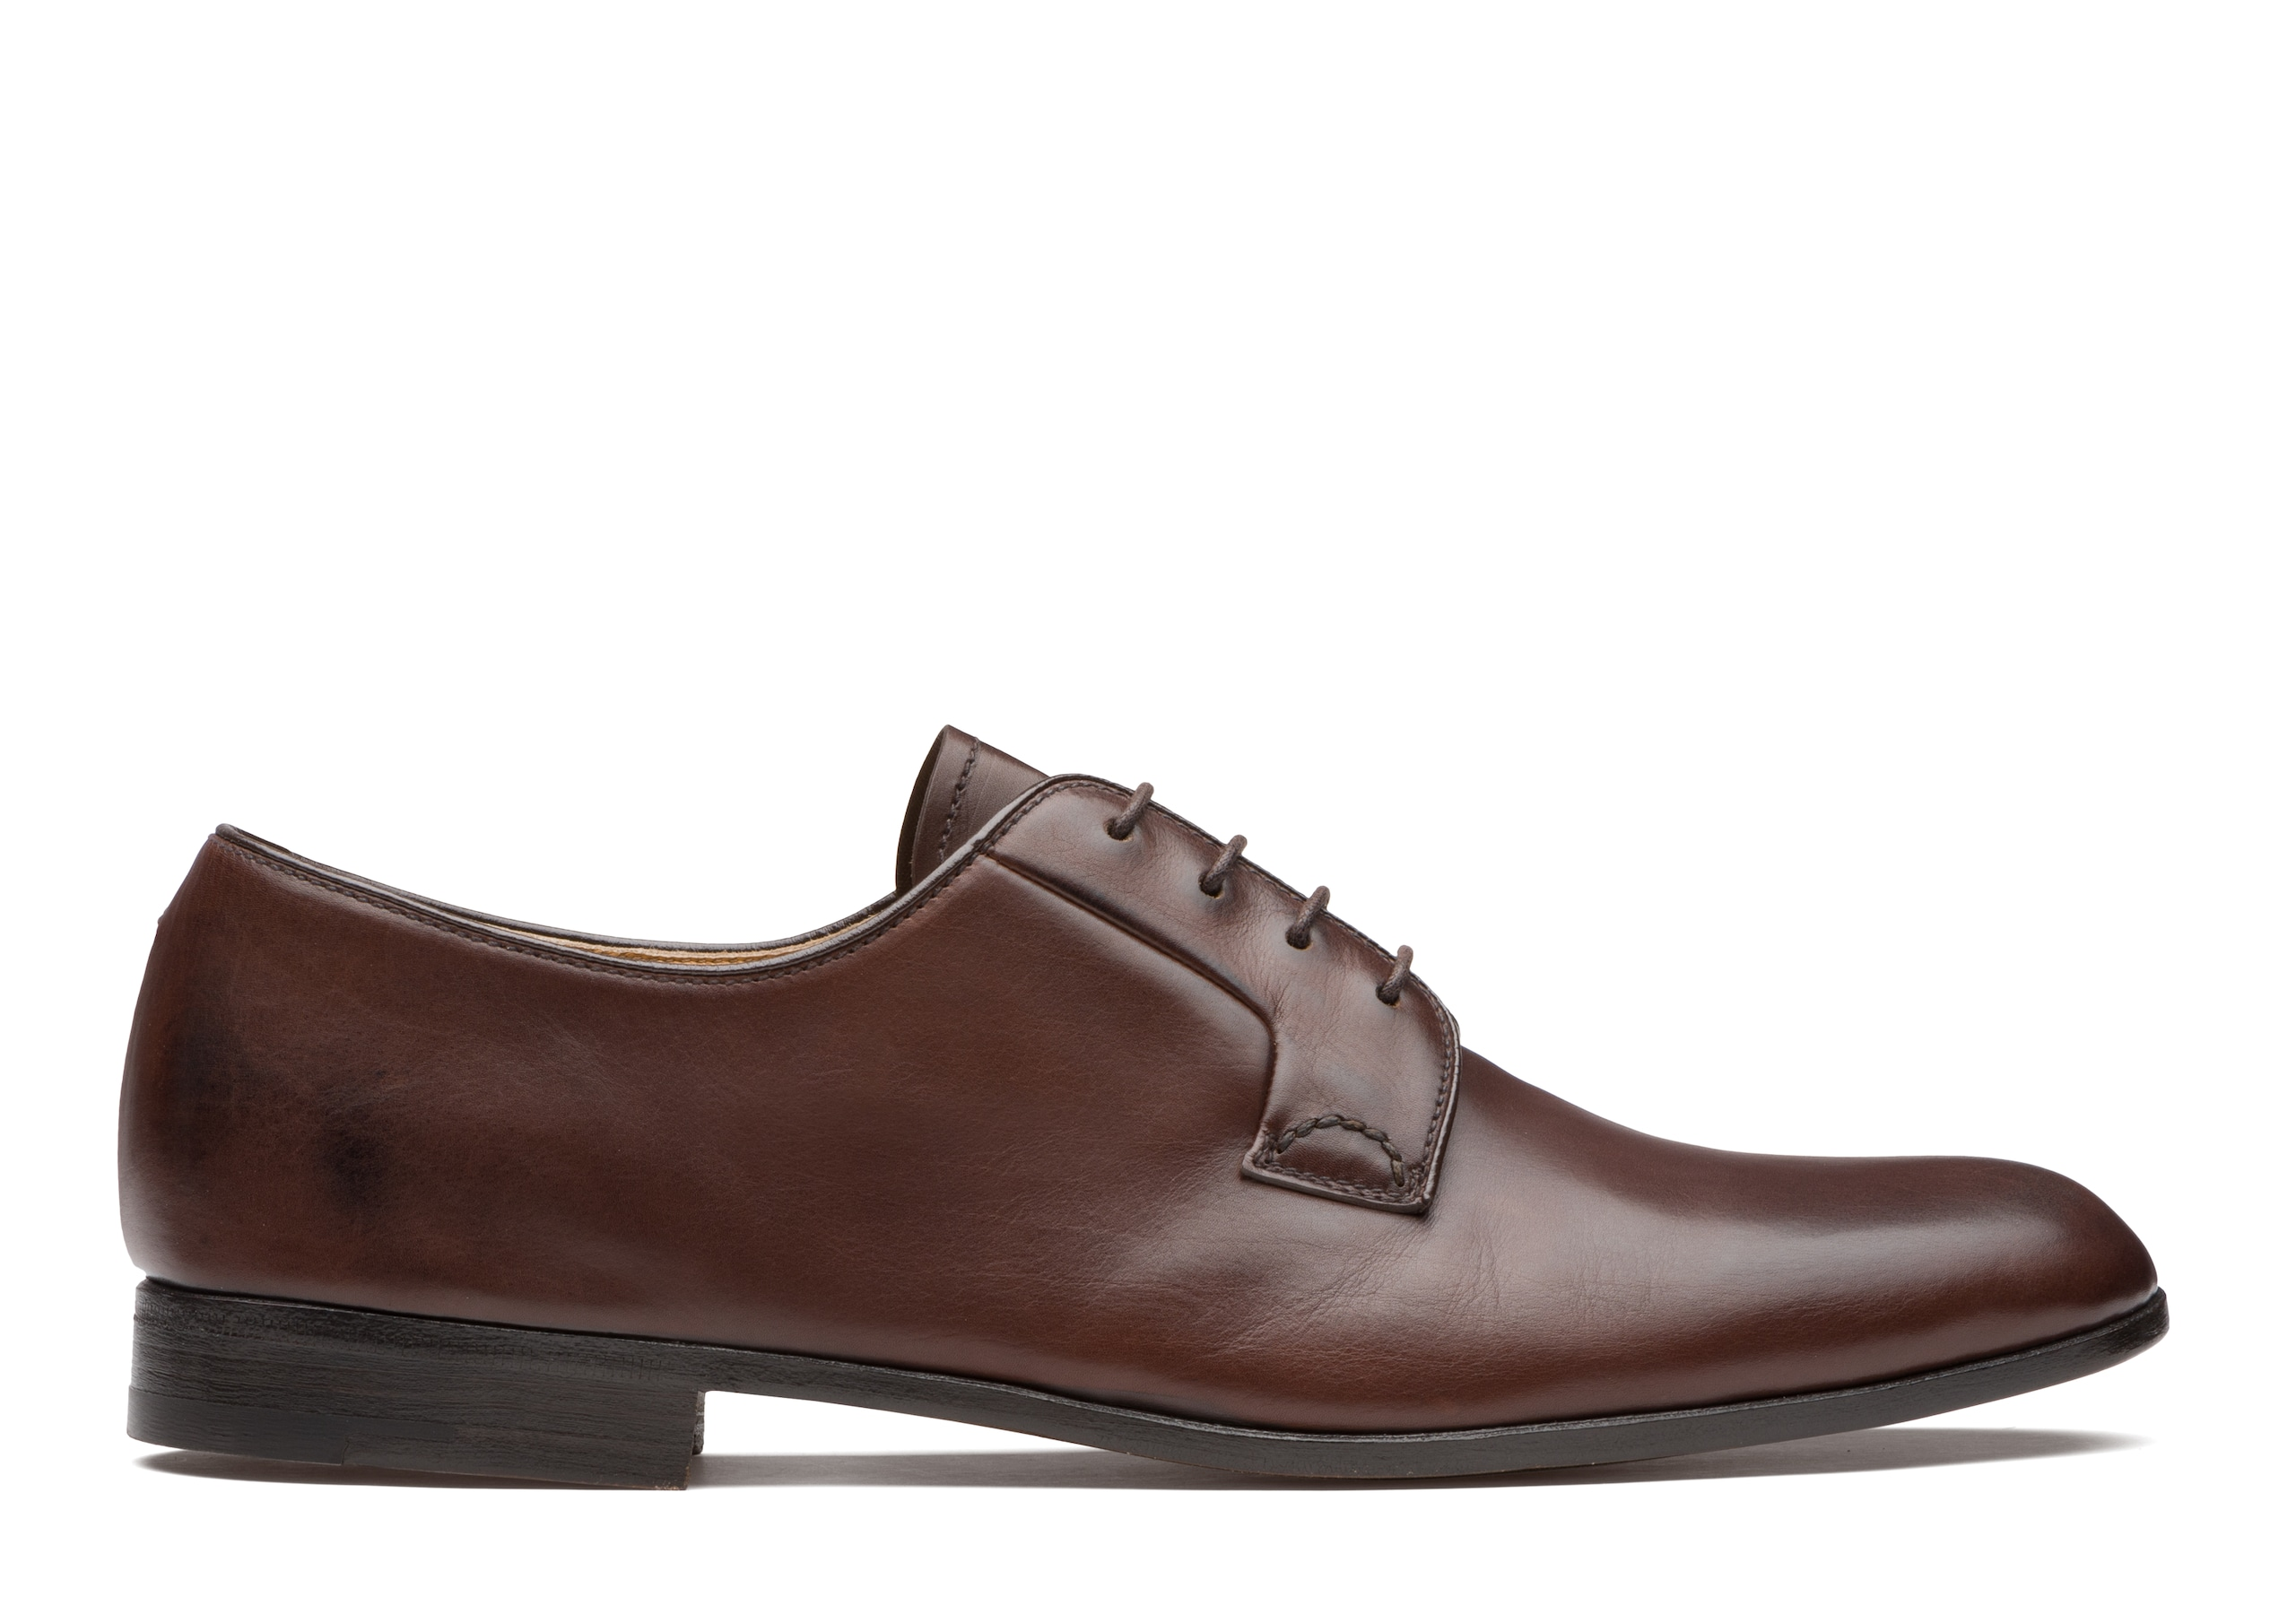 Ditchley Church's Derby en Cuir de Veau Noir Marron